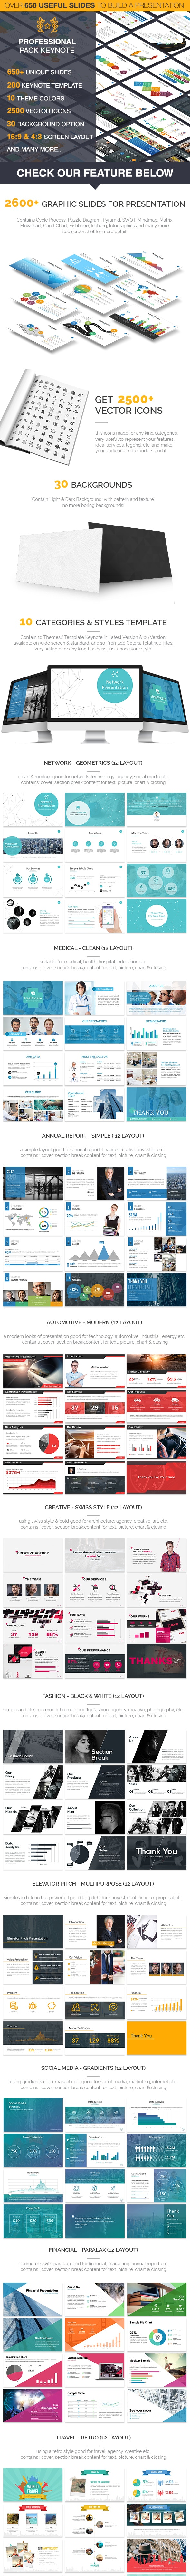 Keynote Template Professional Pack - Business Keynote Templates